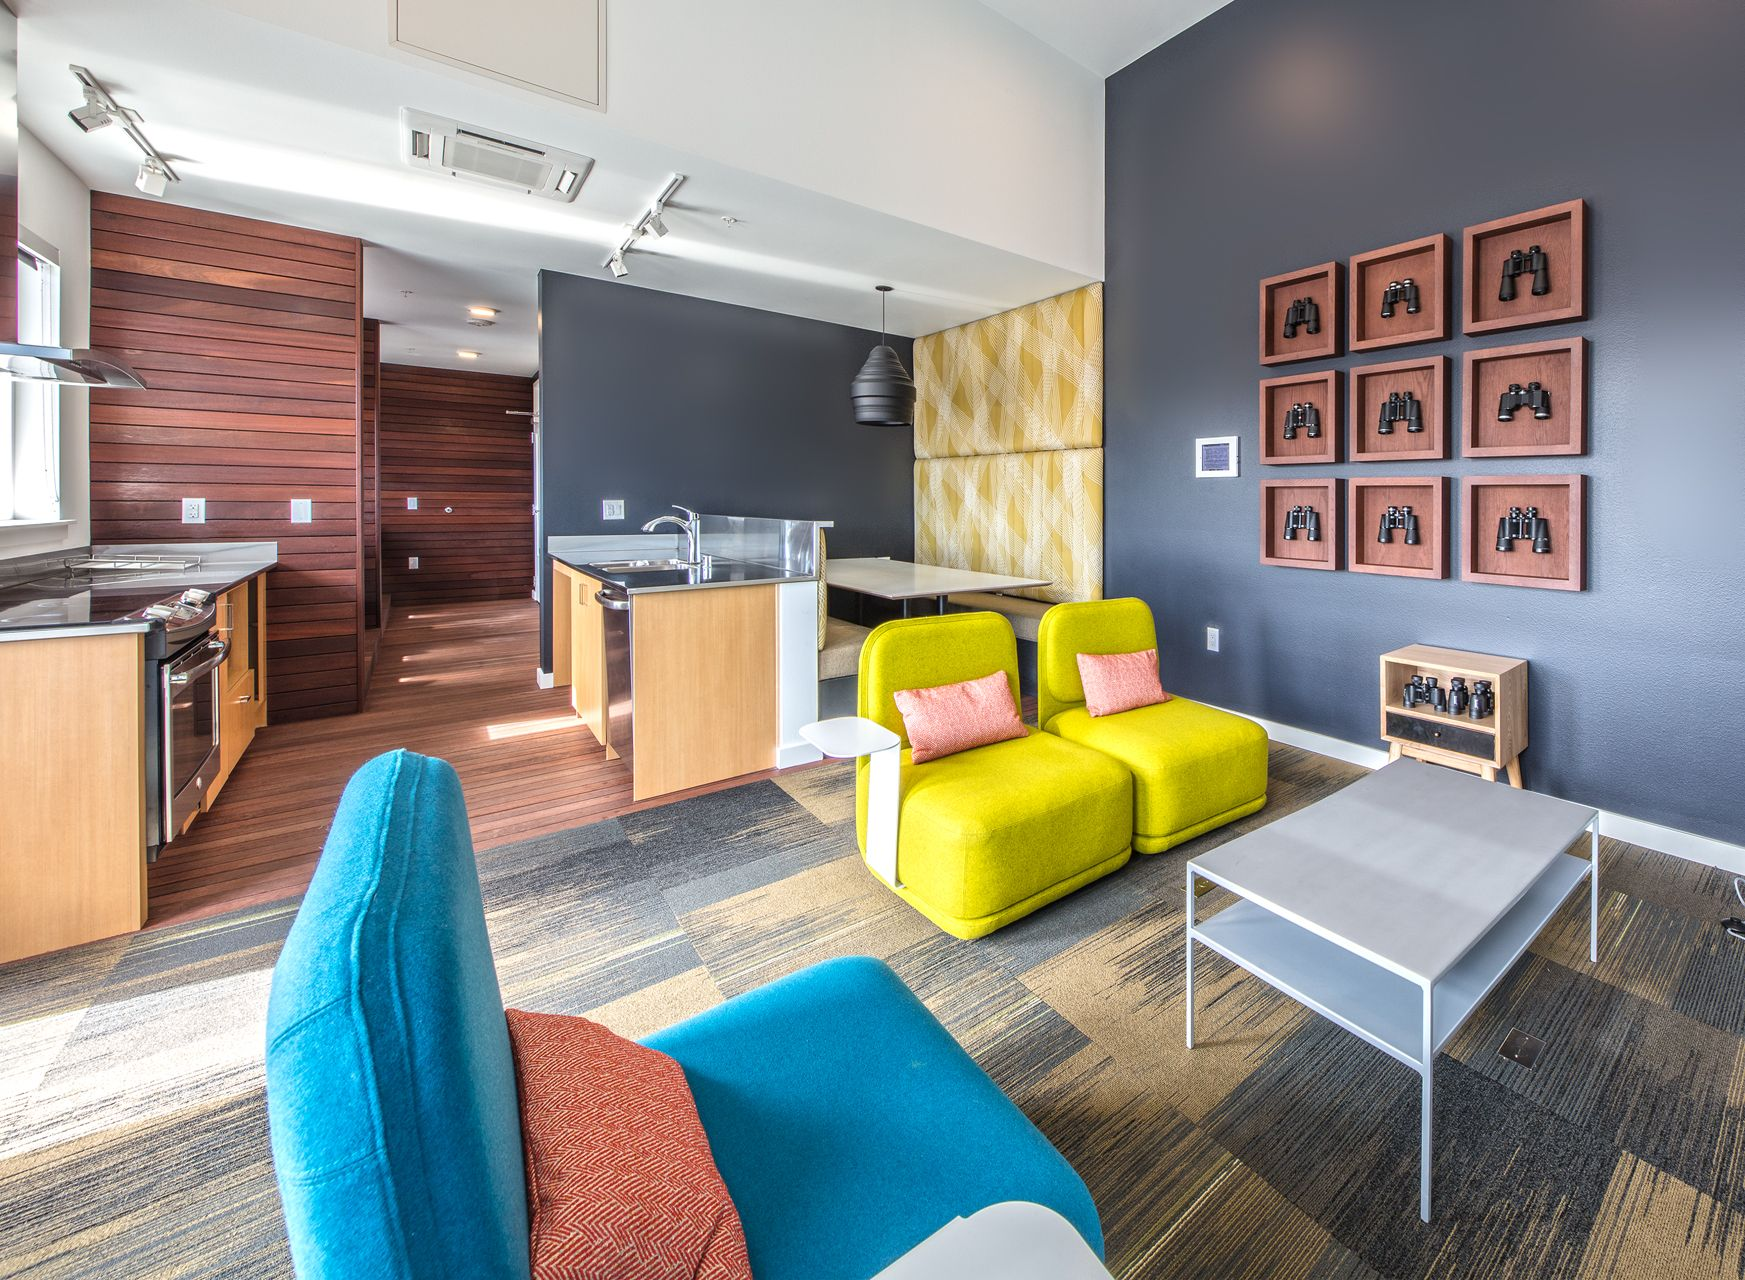 Use A Mix Of Bright Colors And Neutral Earthy Tones To Achieve A Balance In A Room Apartments For Rent Room Home Decor